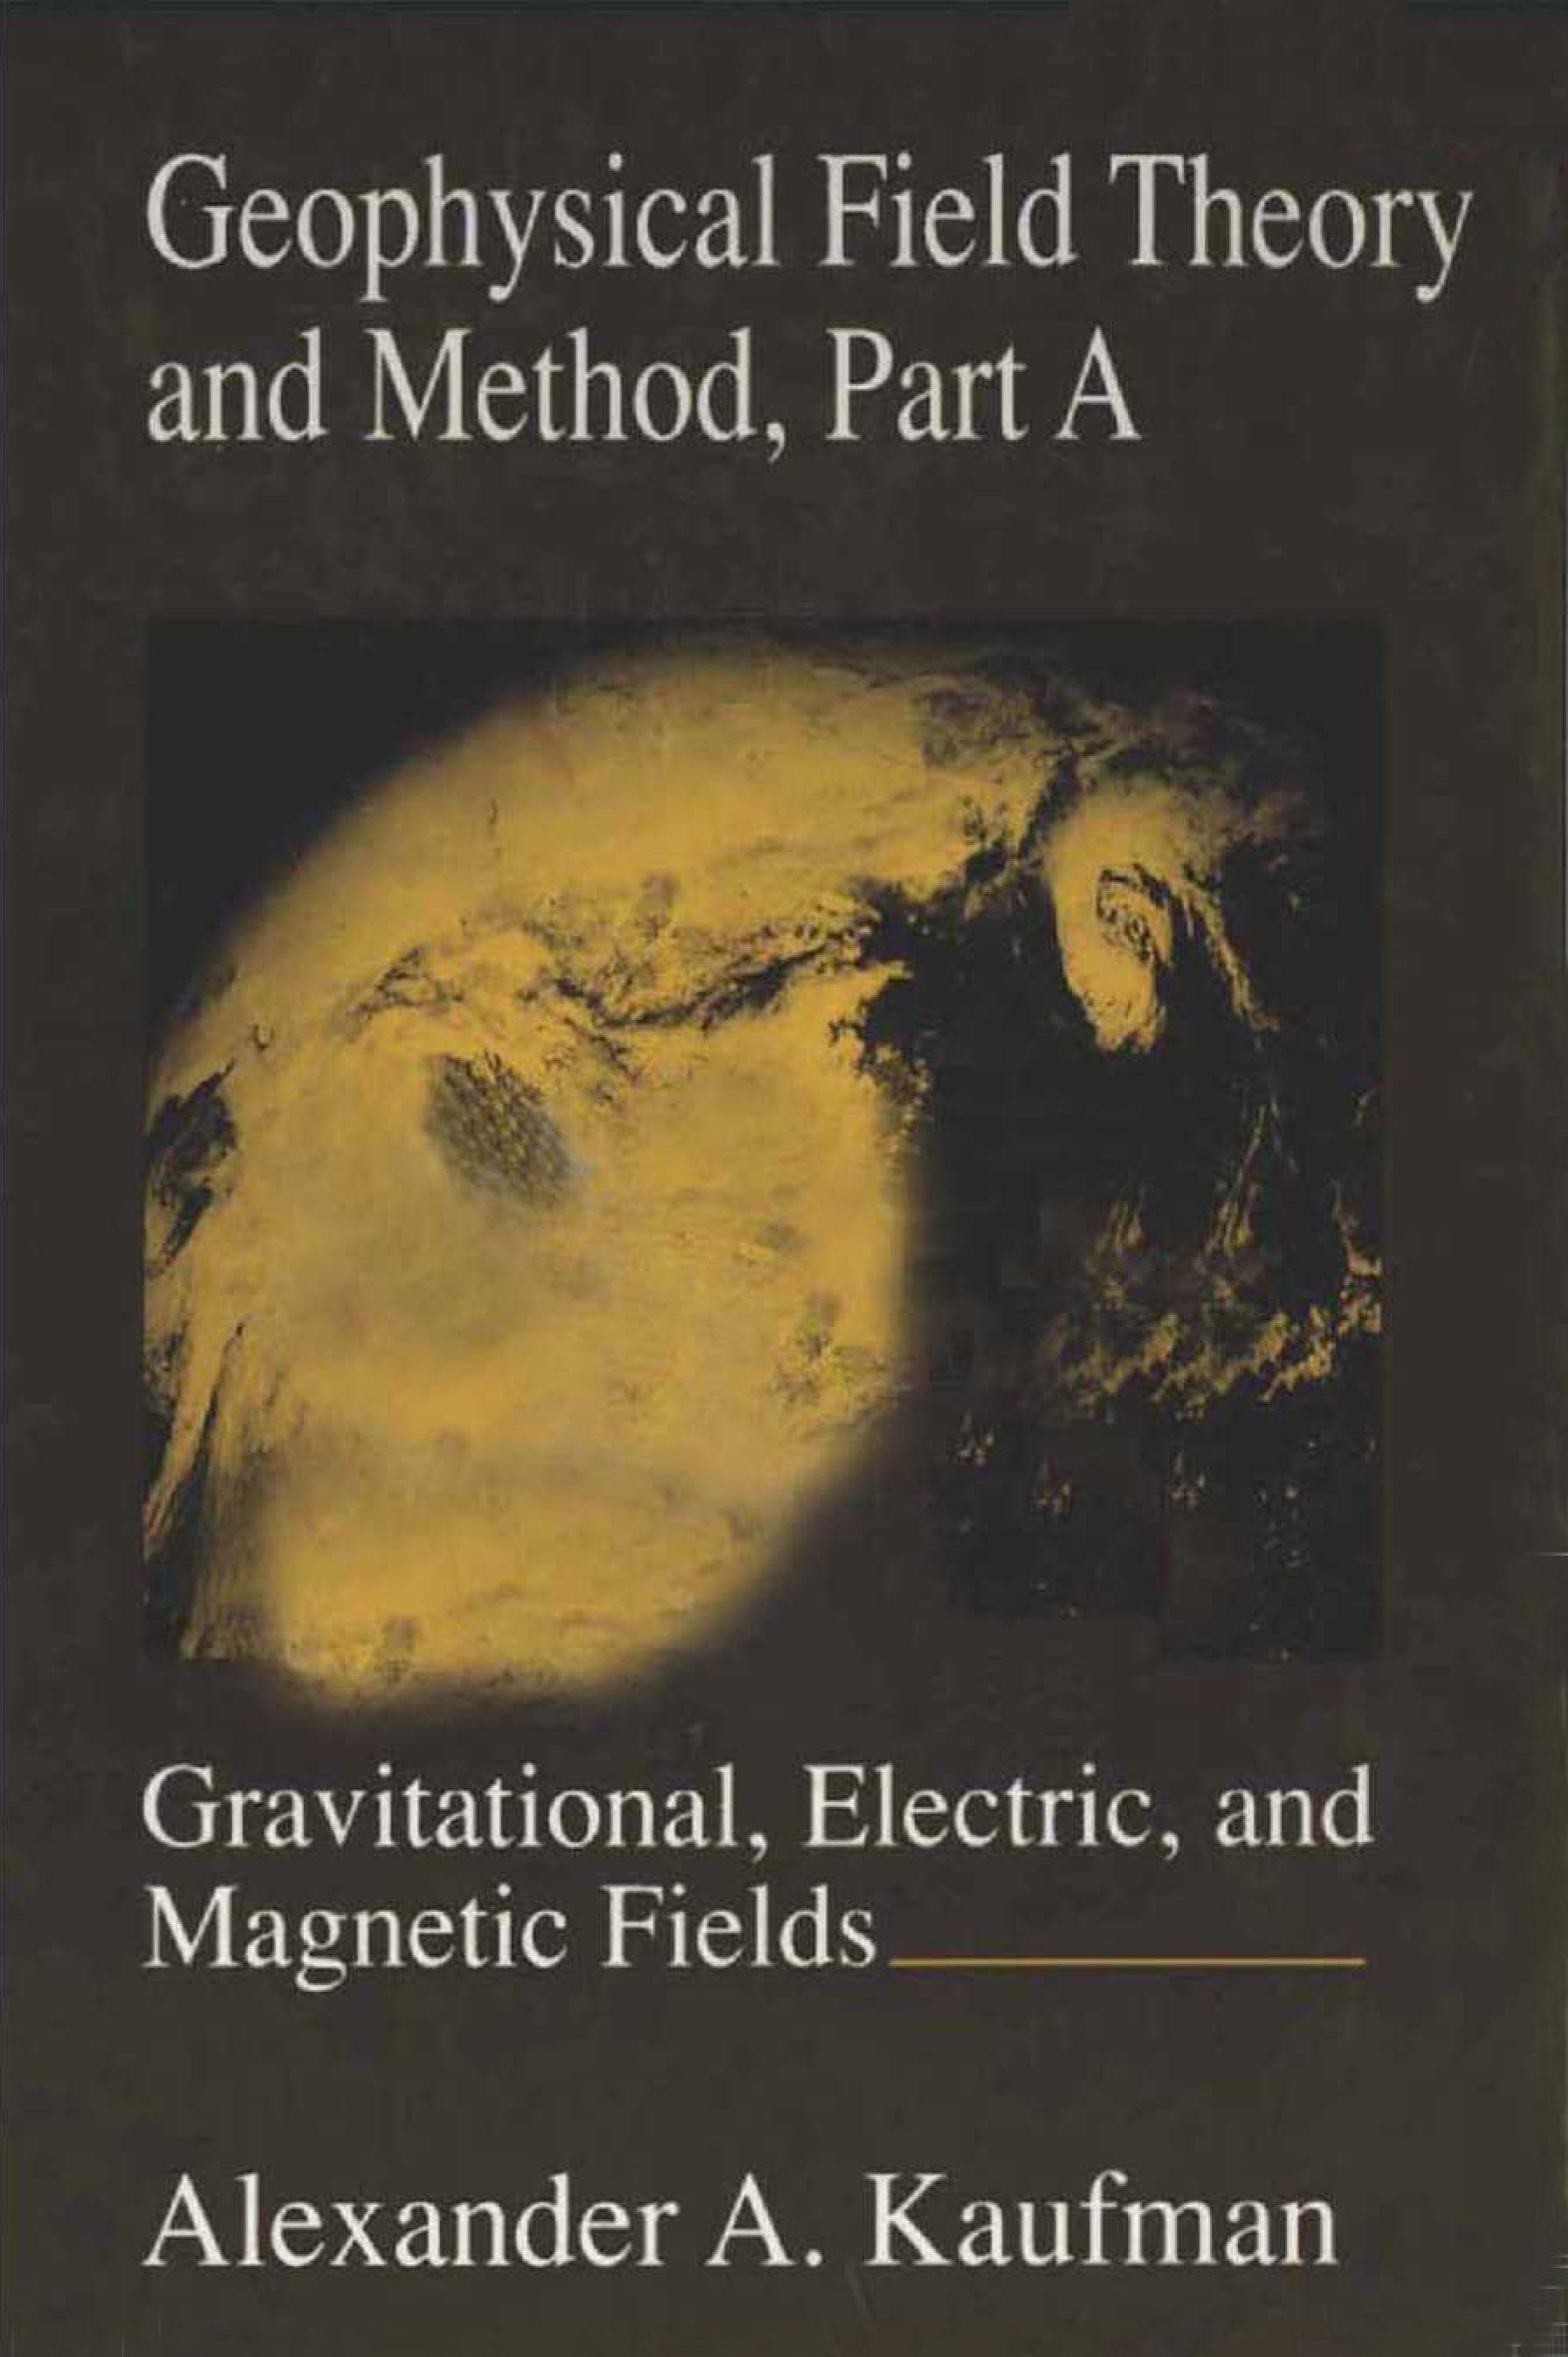 Geophysical Field Theory and Method, Part A: Gravitational, Electric, and Magnetic Fields EB9780080959924